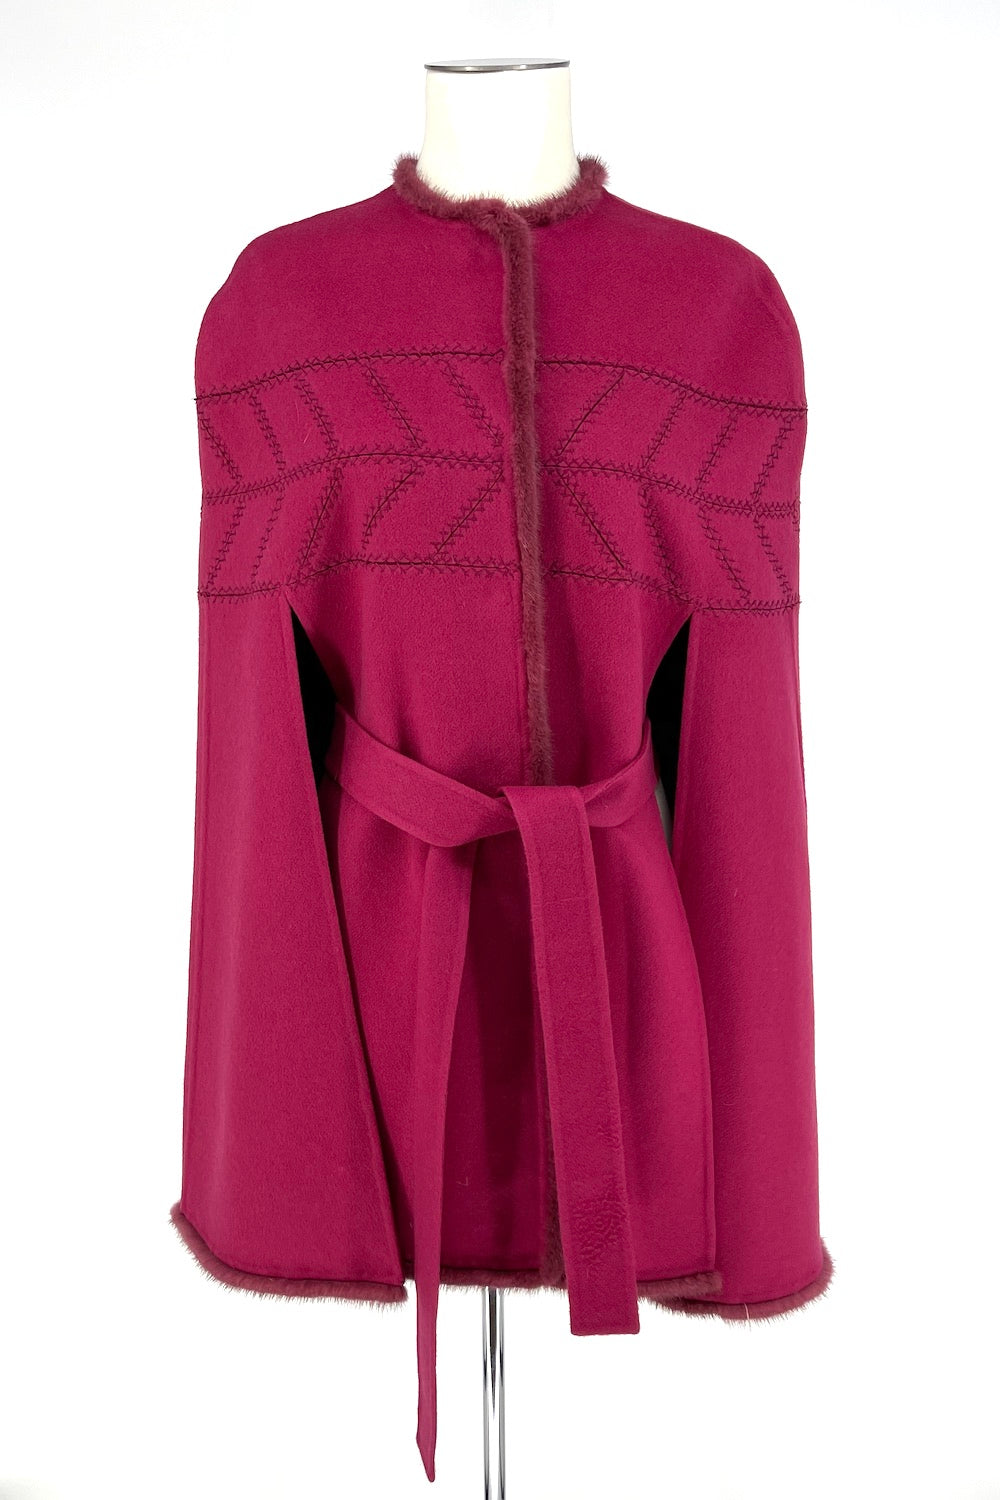 Orchid Mink Double Face Stitched Cape with Fur Trim